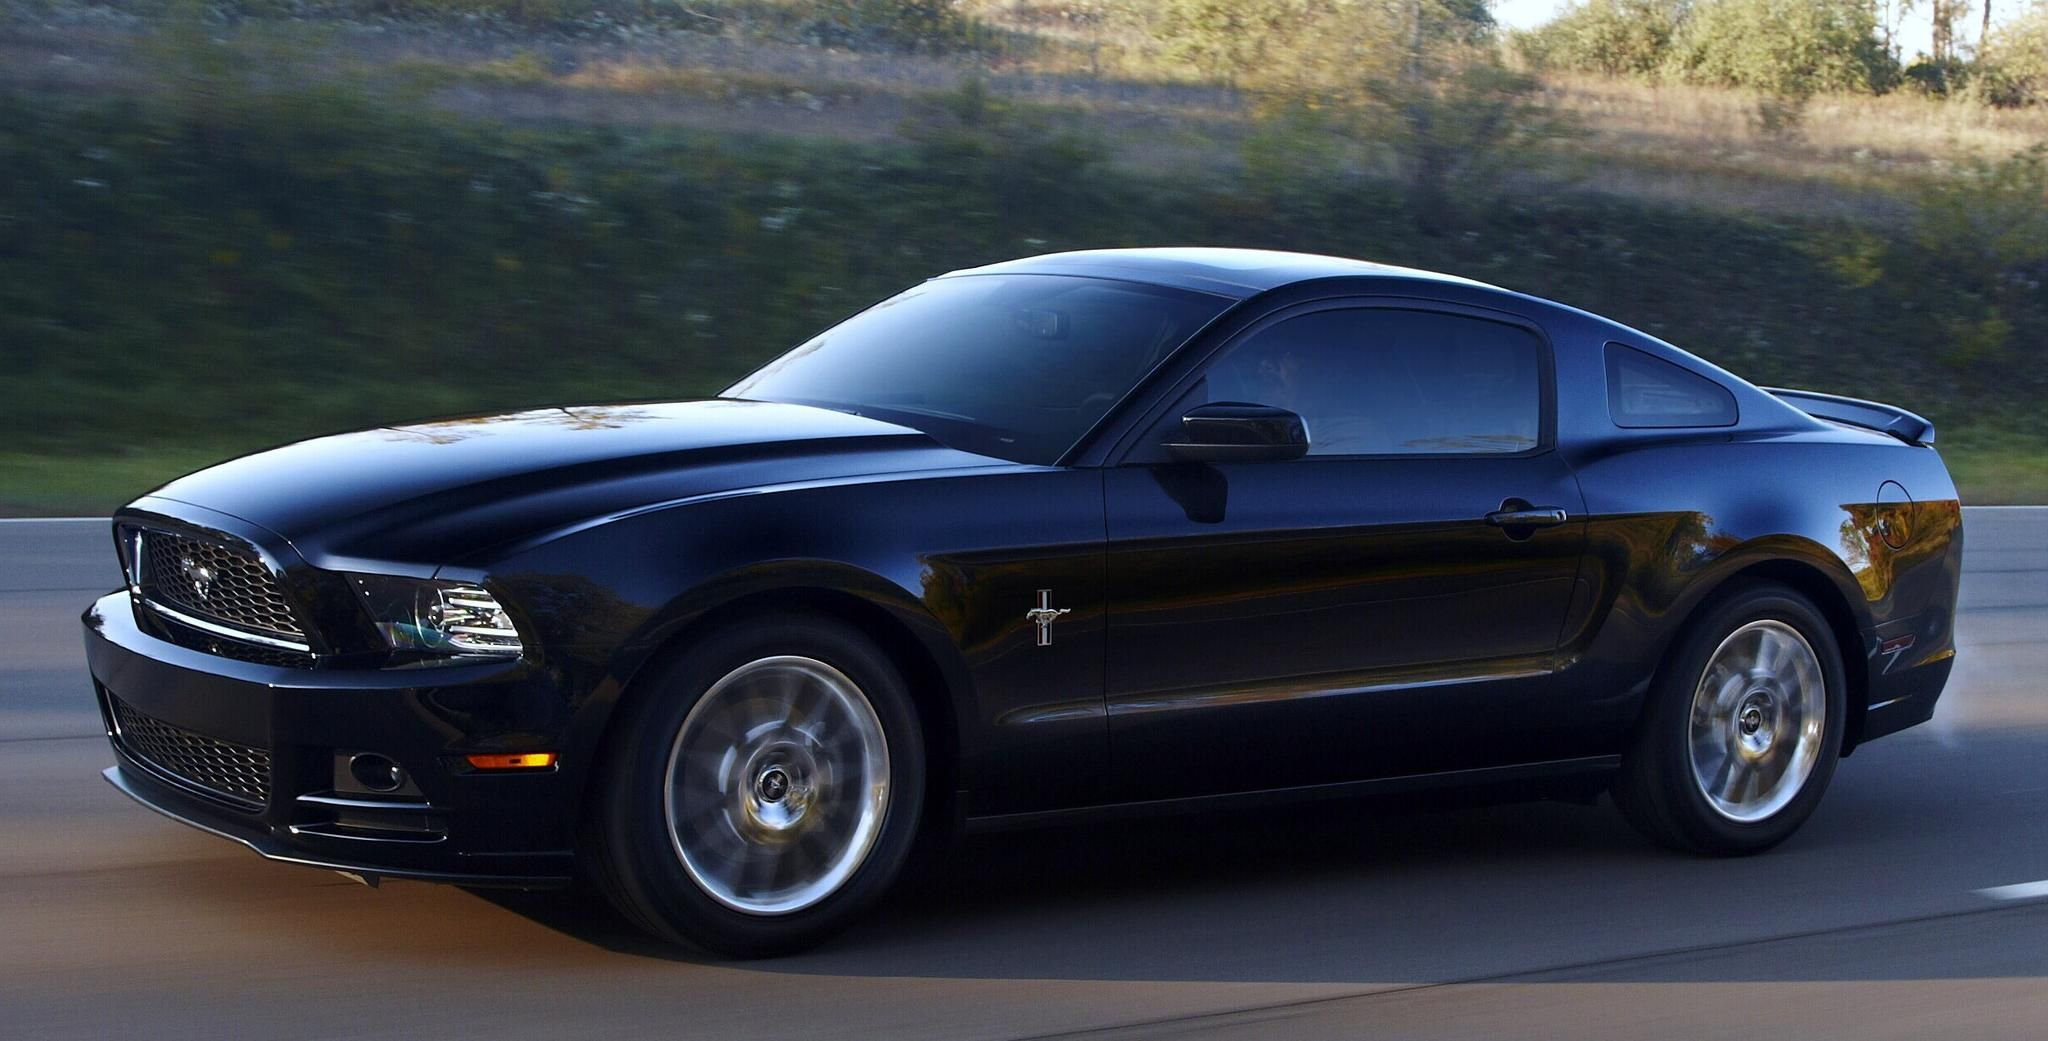 the ford mustang dethroned the chevrolet camaro in sales last month to become the best